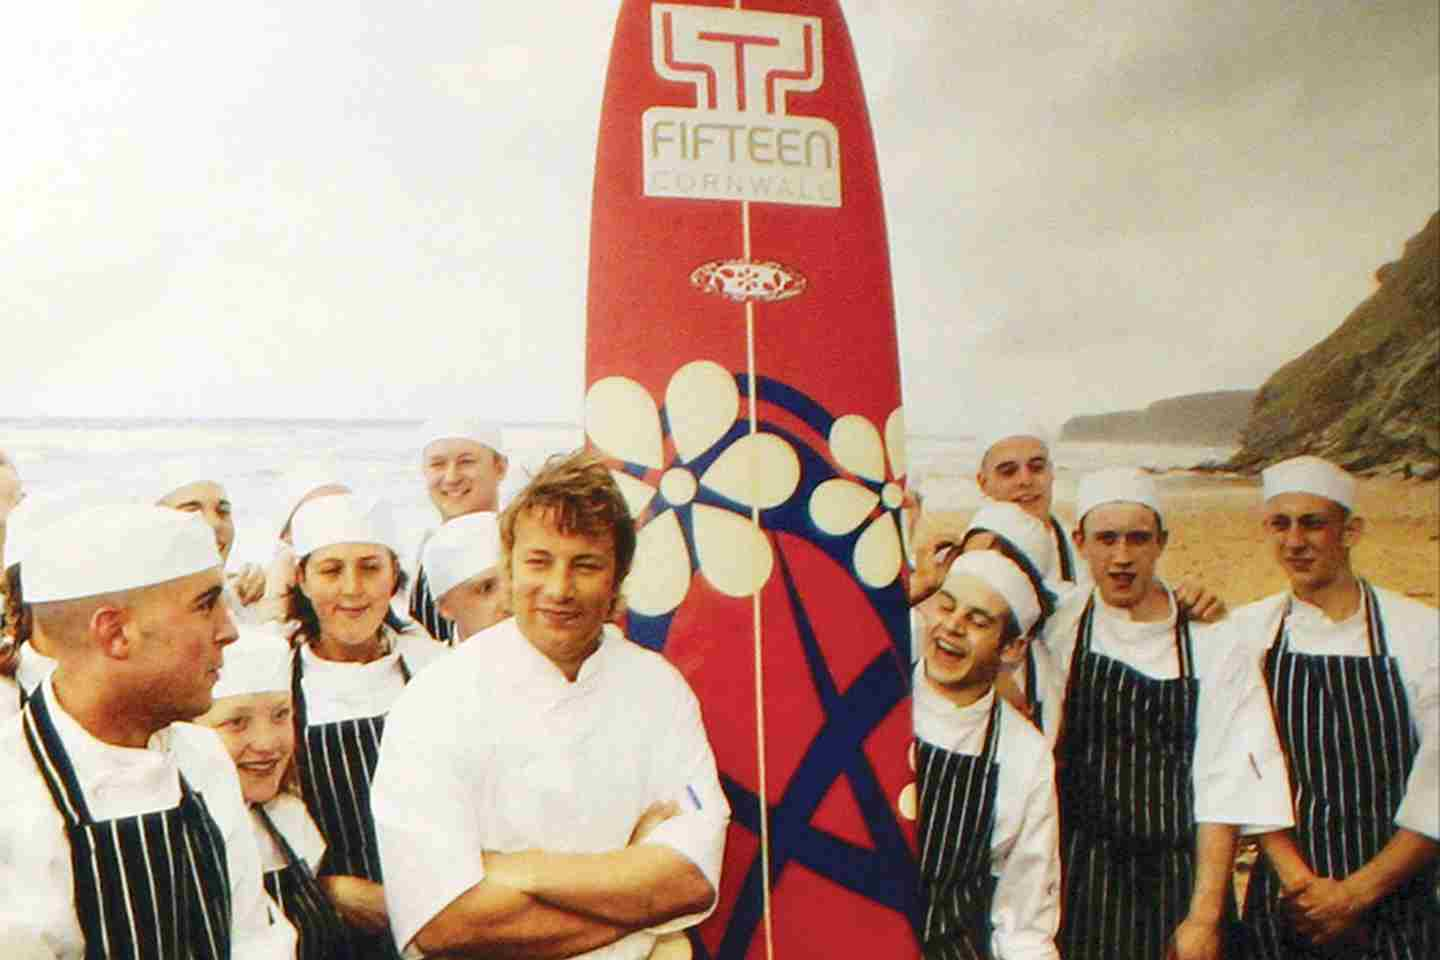 Jamie Oliver On The Beach